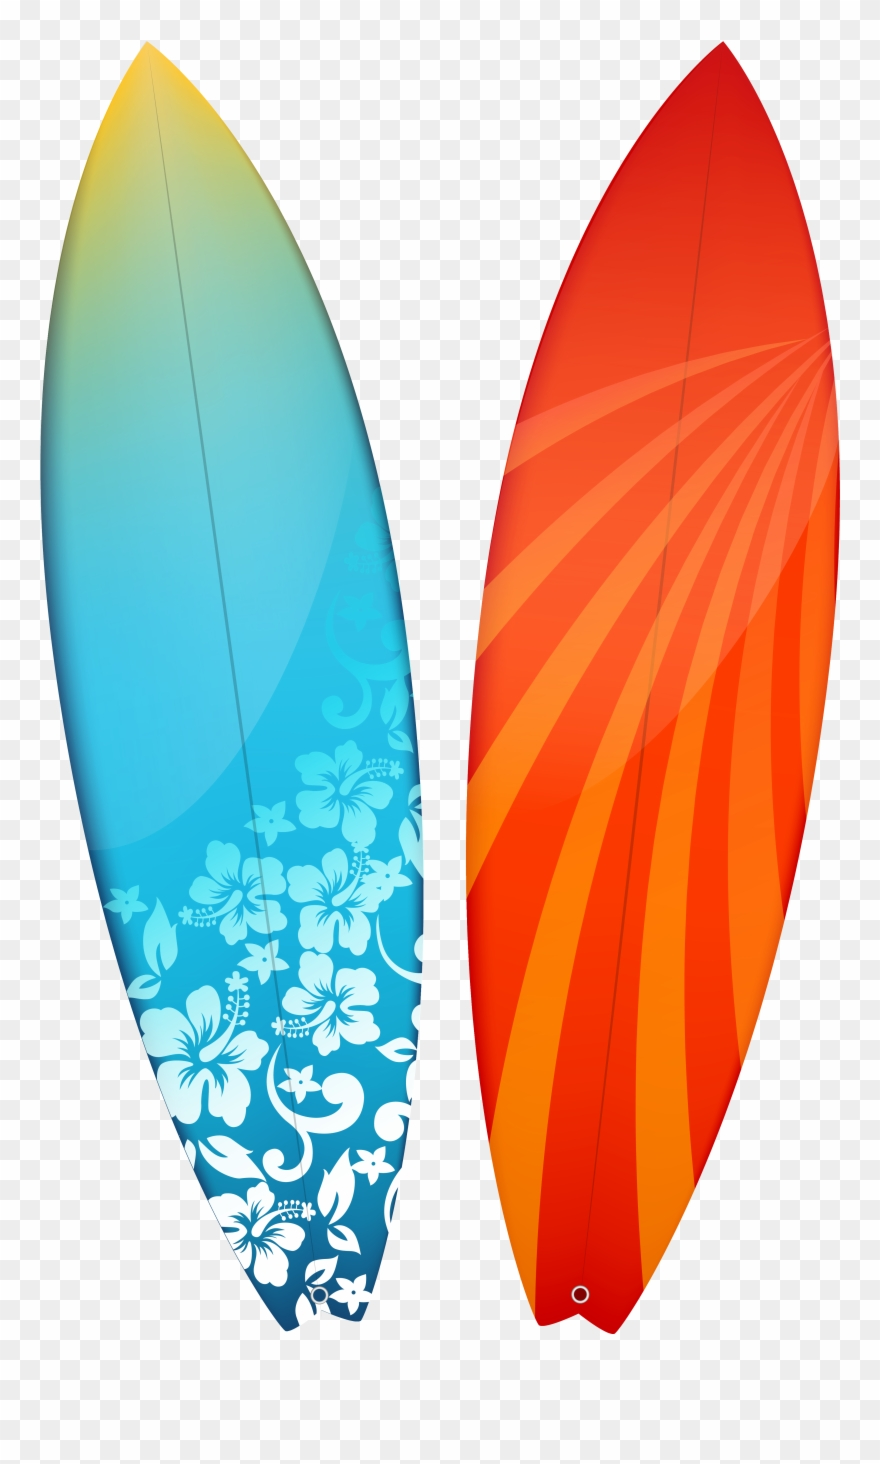 Surfboards Clipart Image.